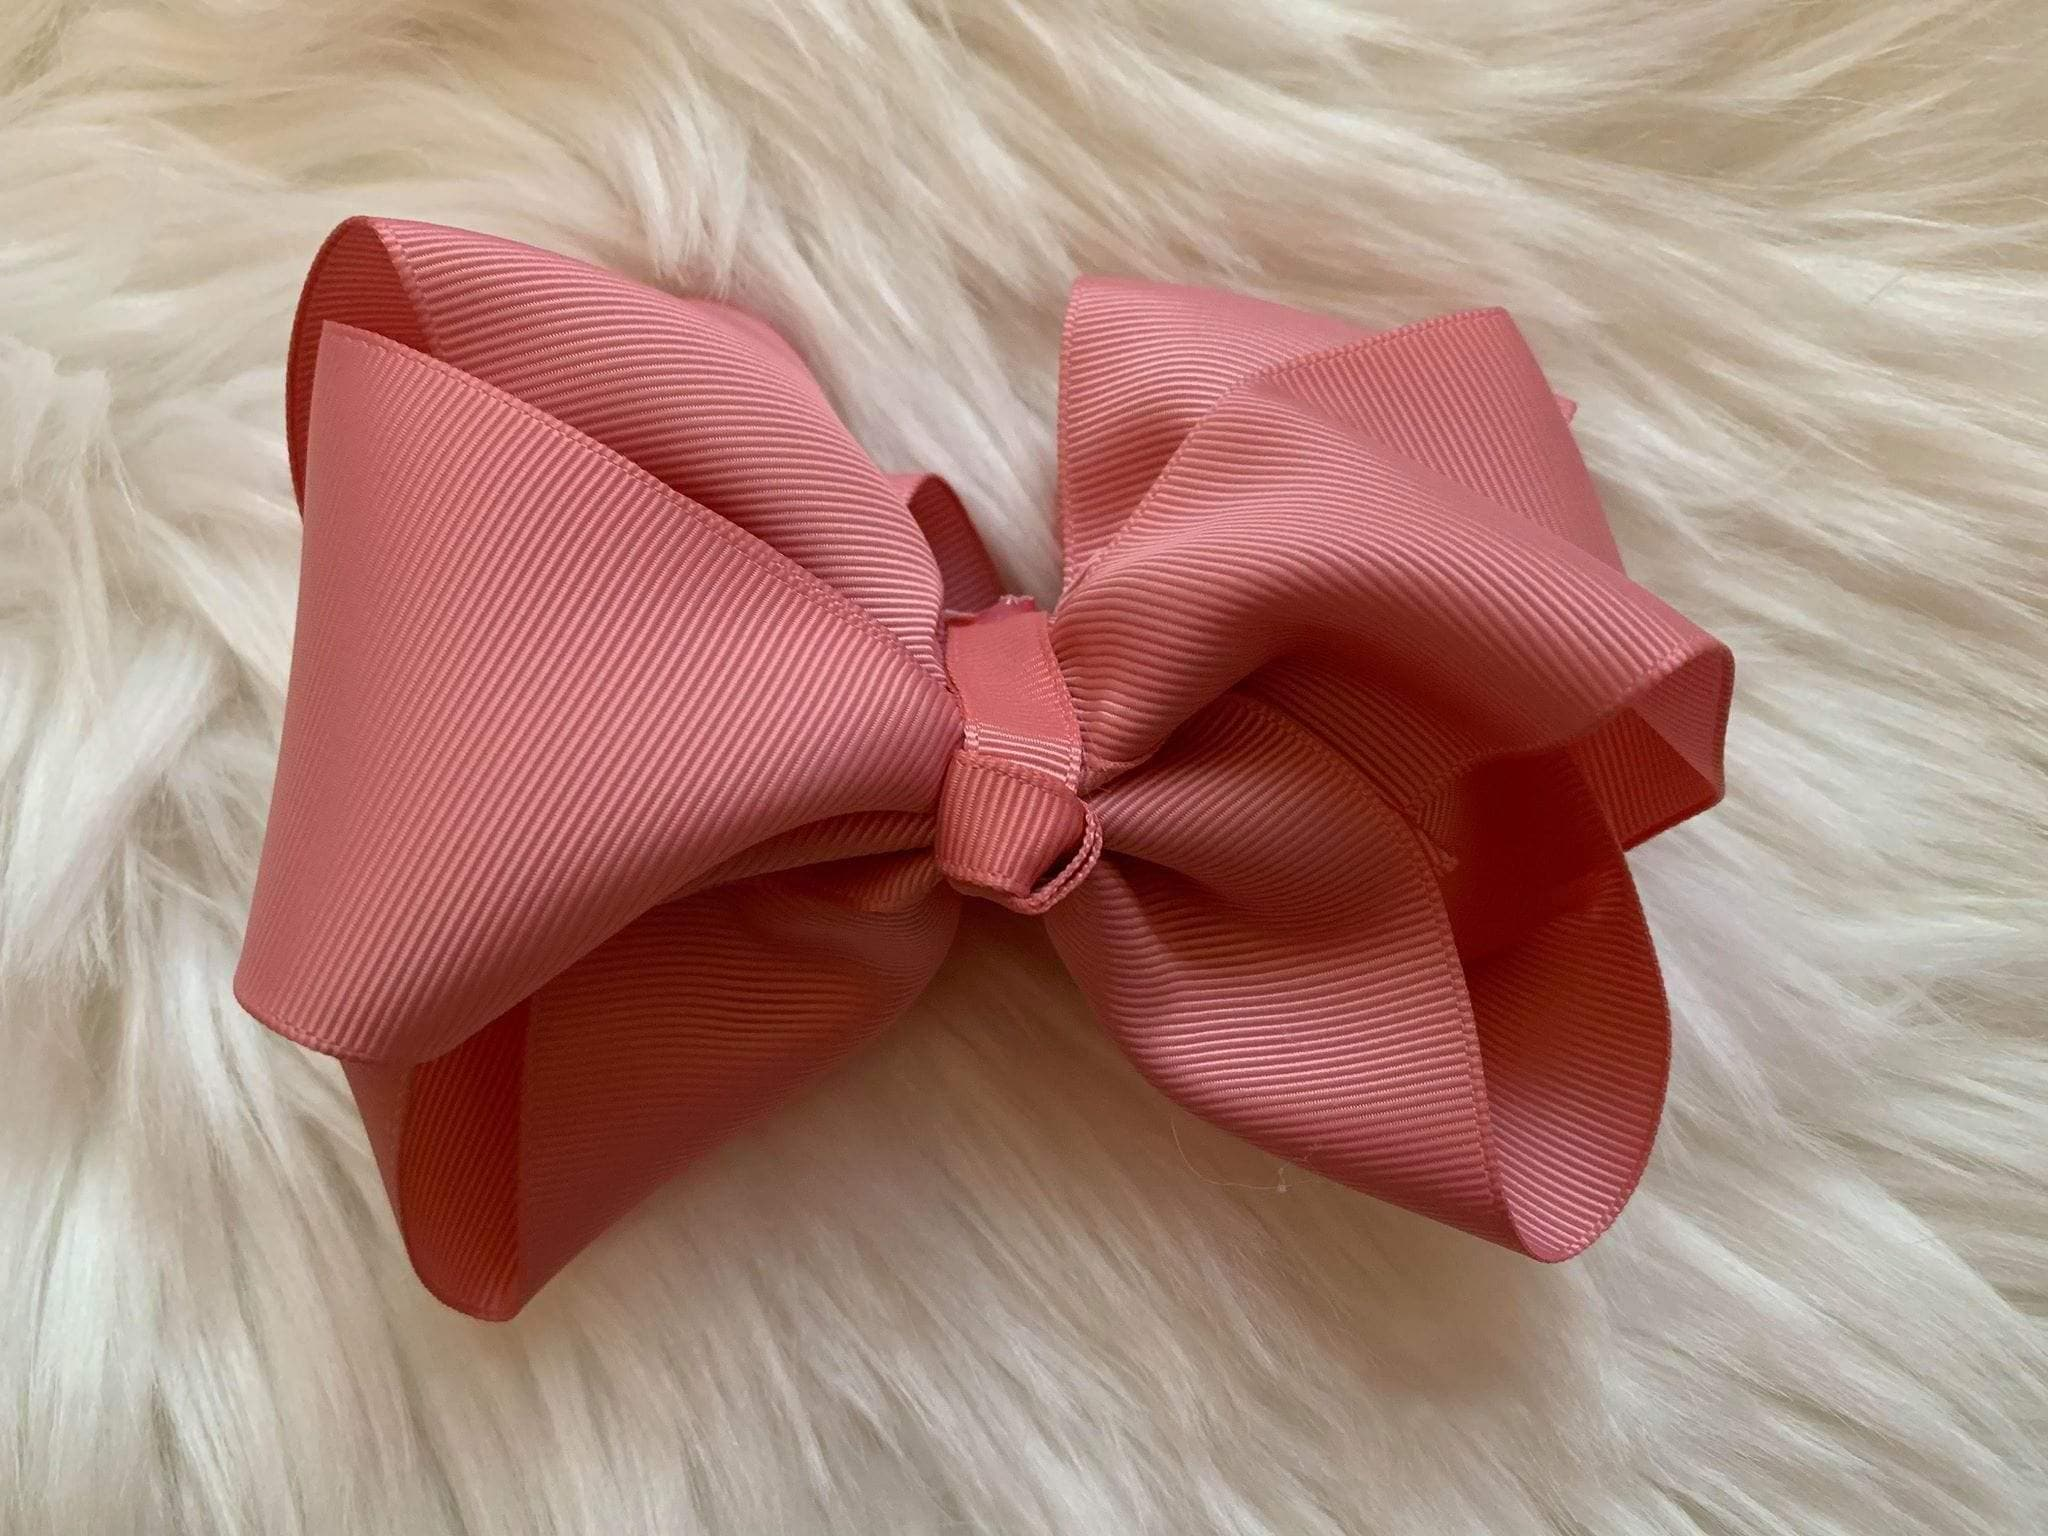 Mariposa Children's Boutique Hairbow Hairbow Dusky Pink 6""